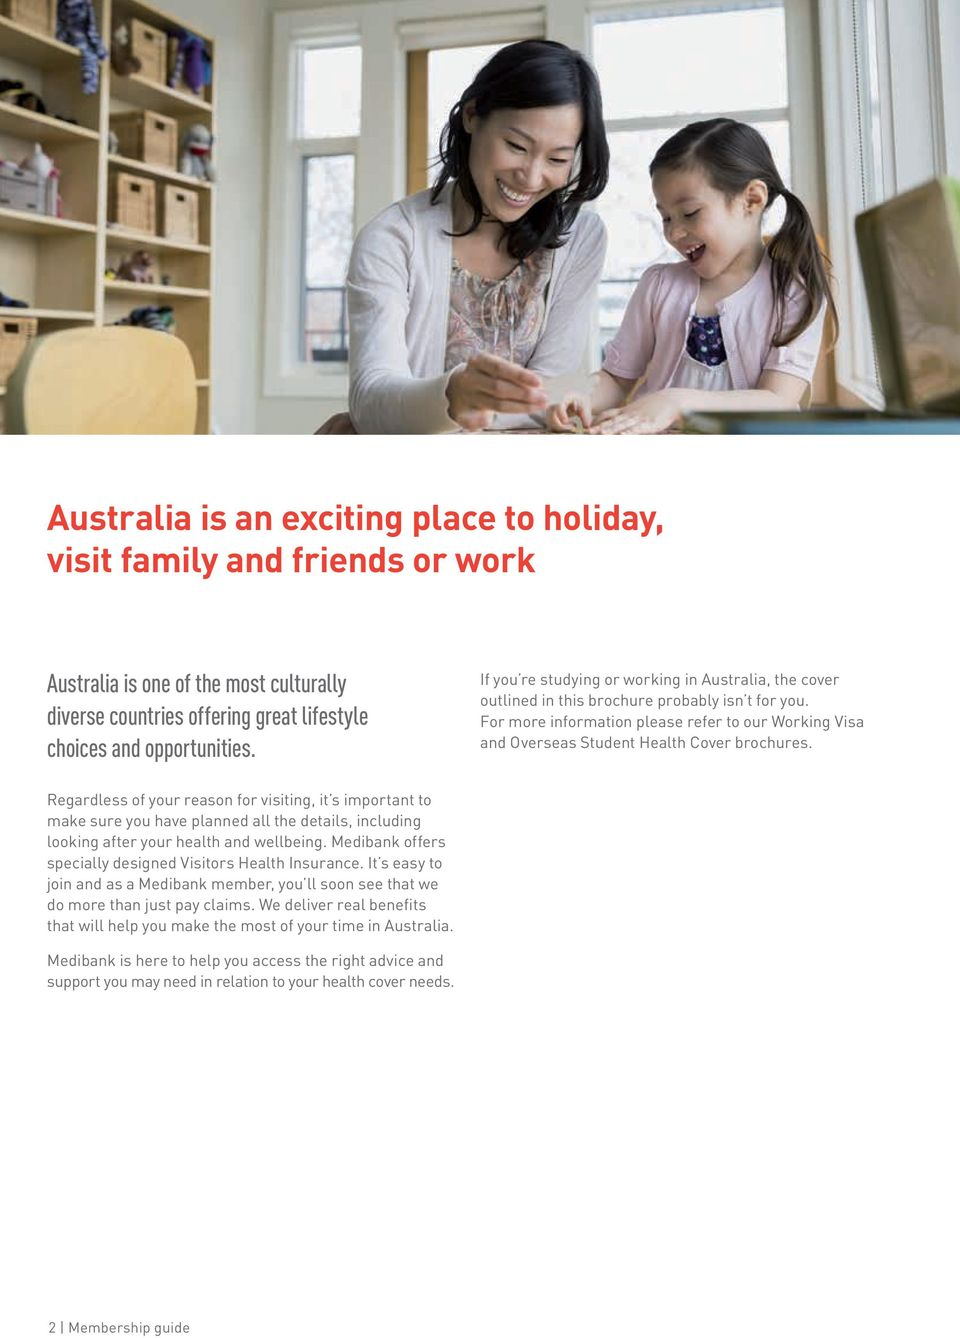 For more information please refer to our Working Visa and Overseas Student Health Cover brochures.